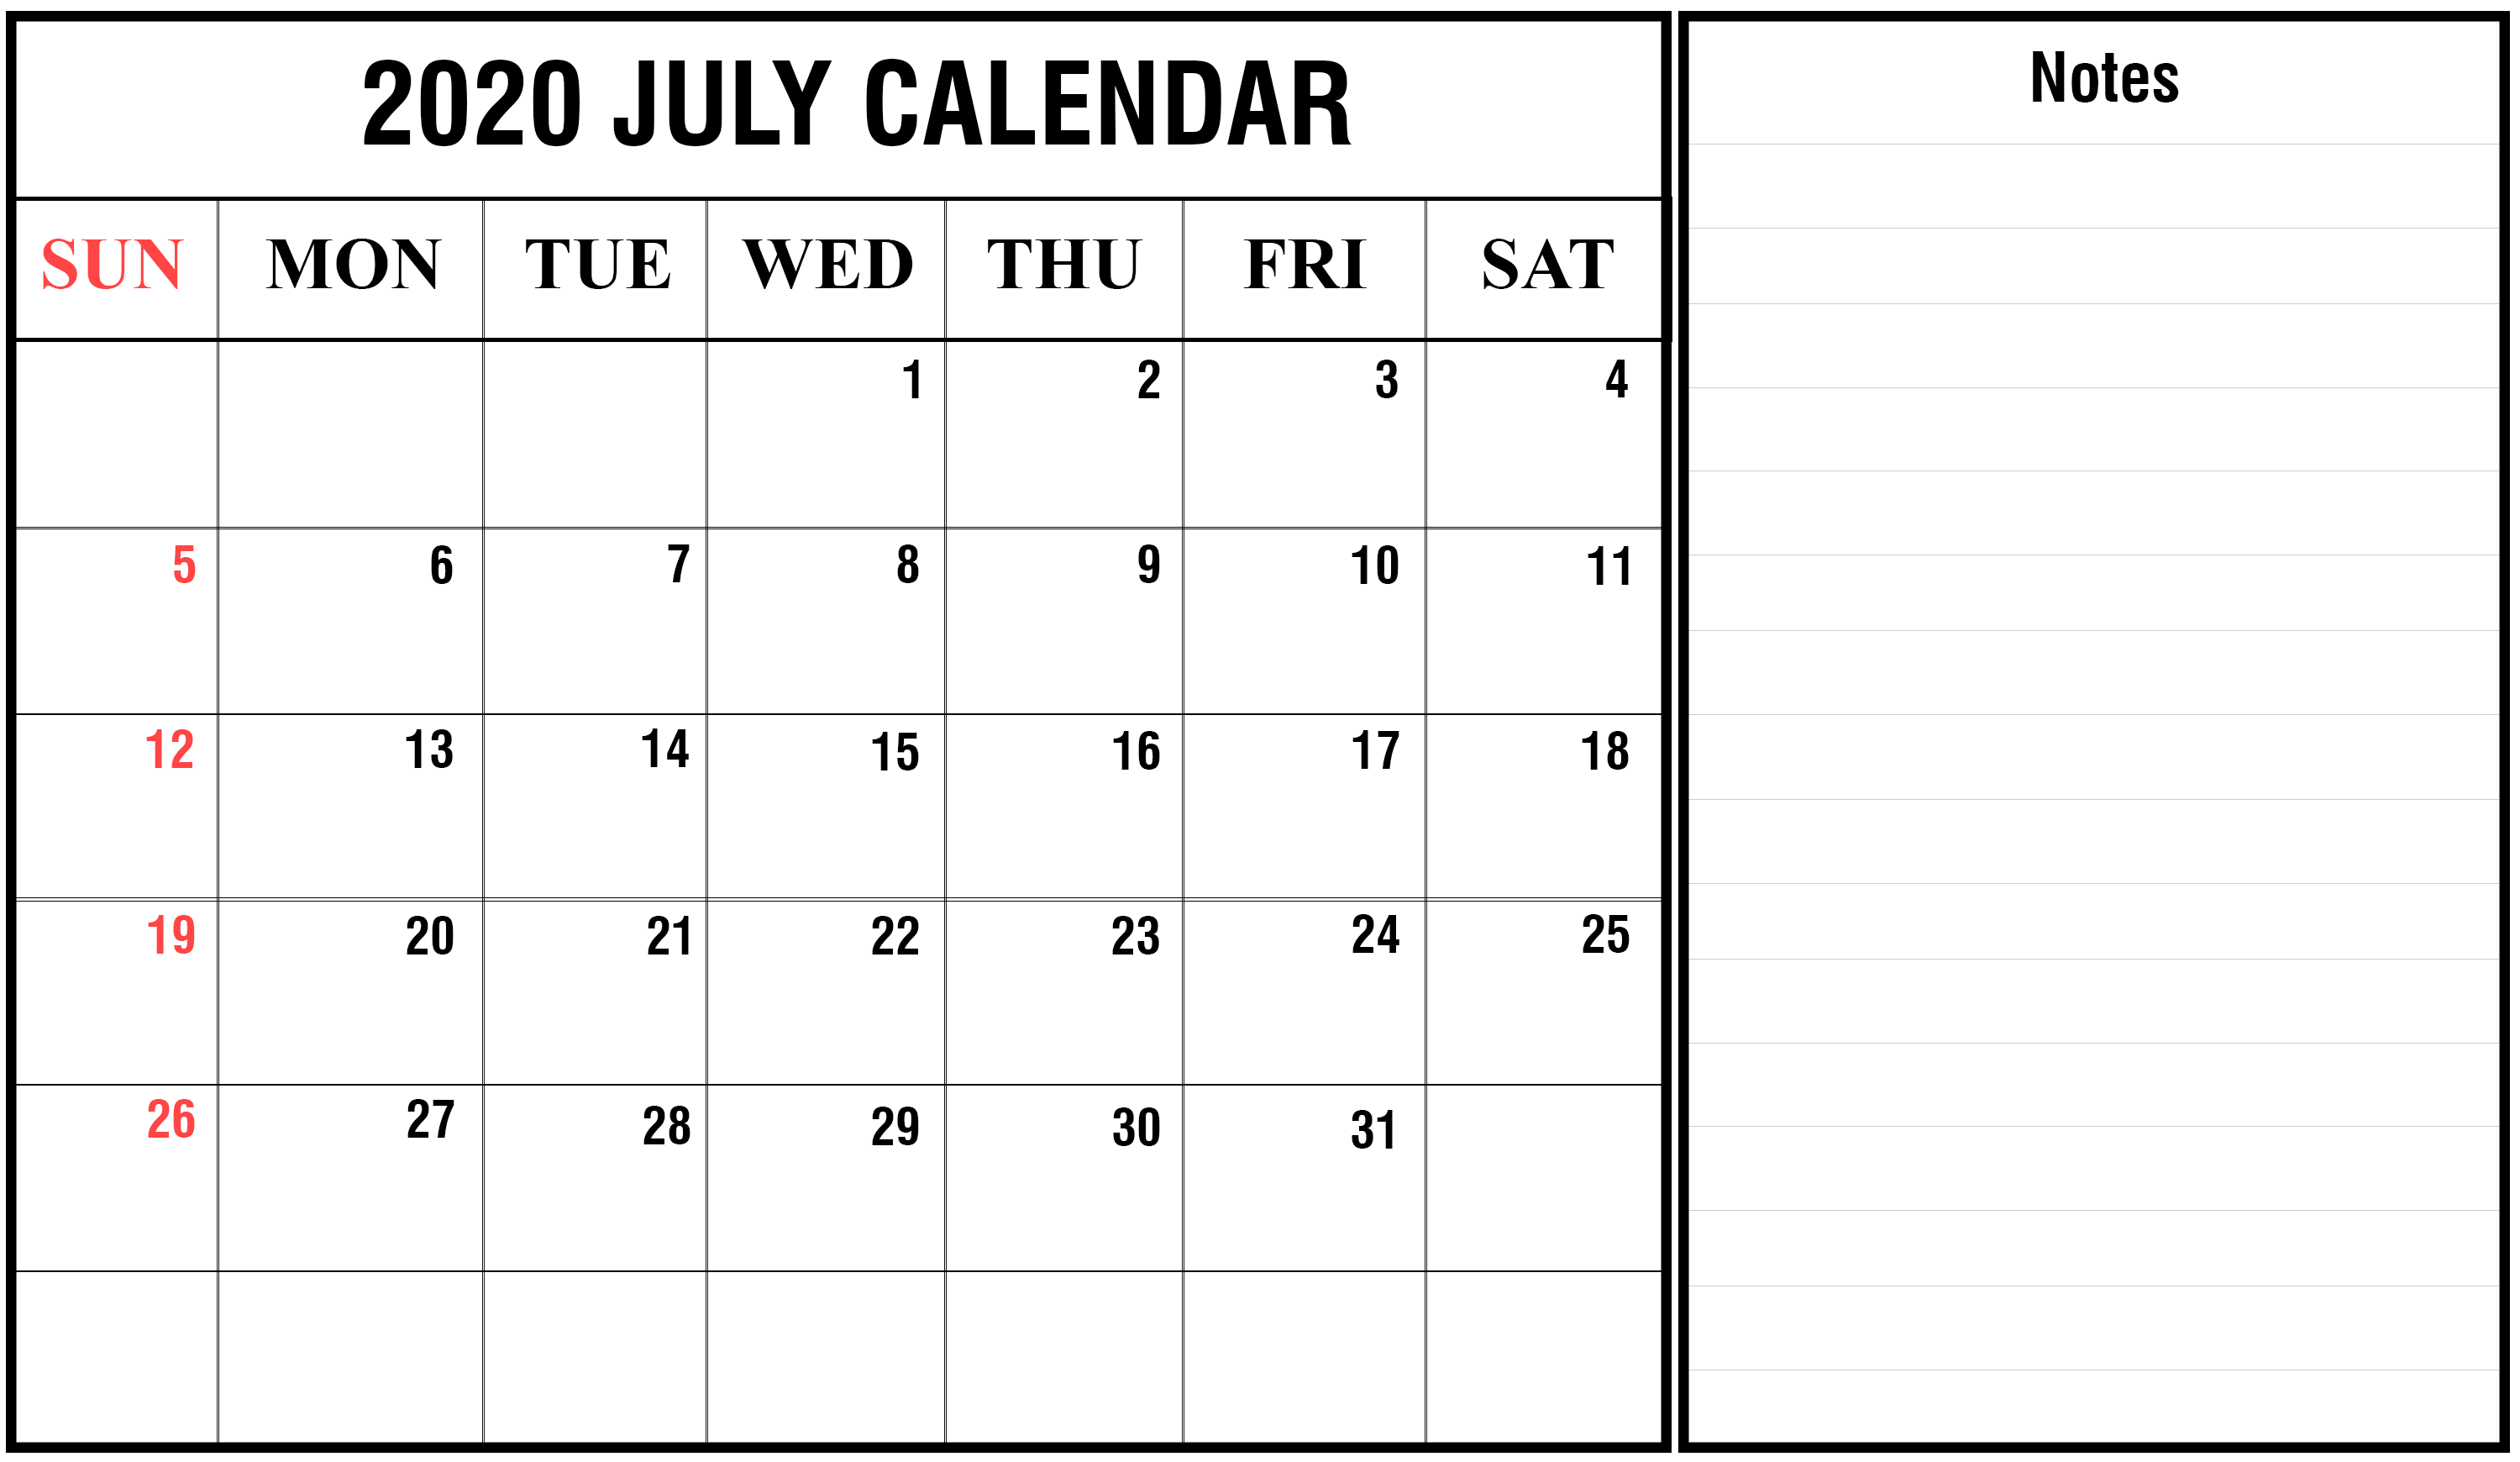 Editable July Calendar 2020 with Notes